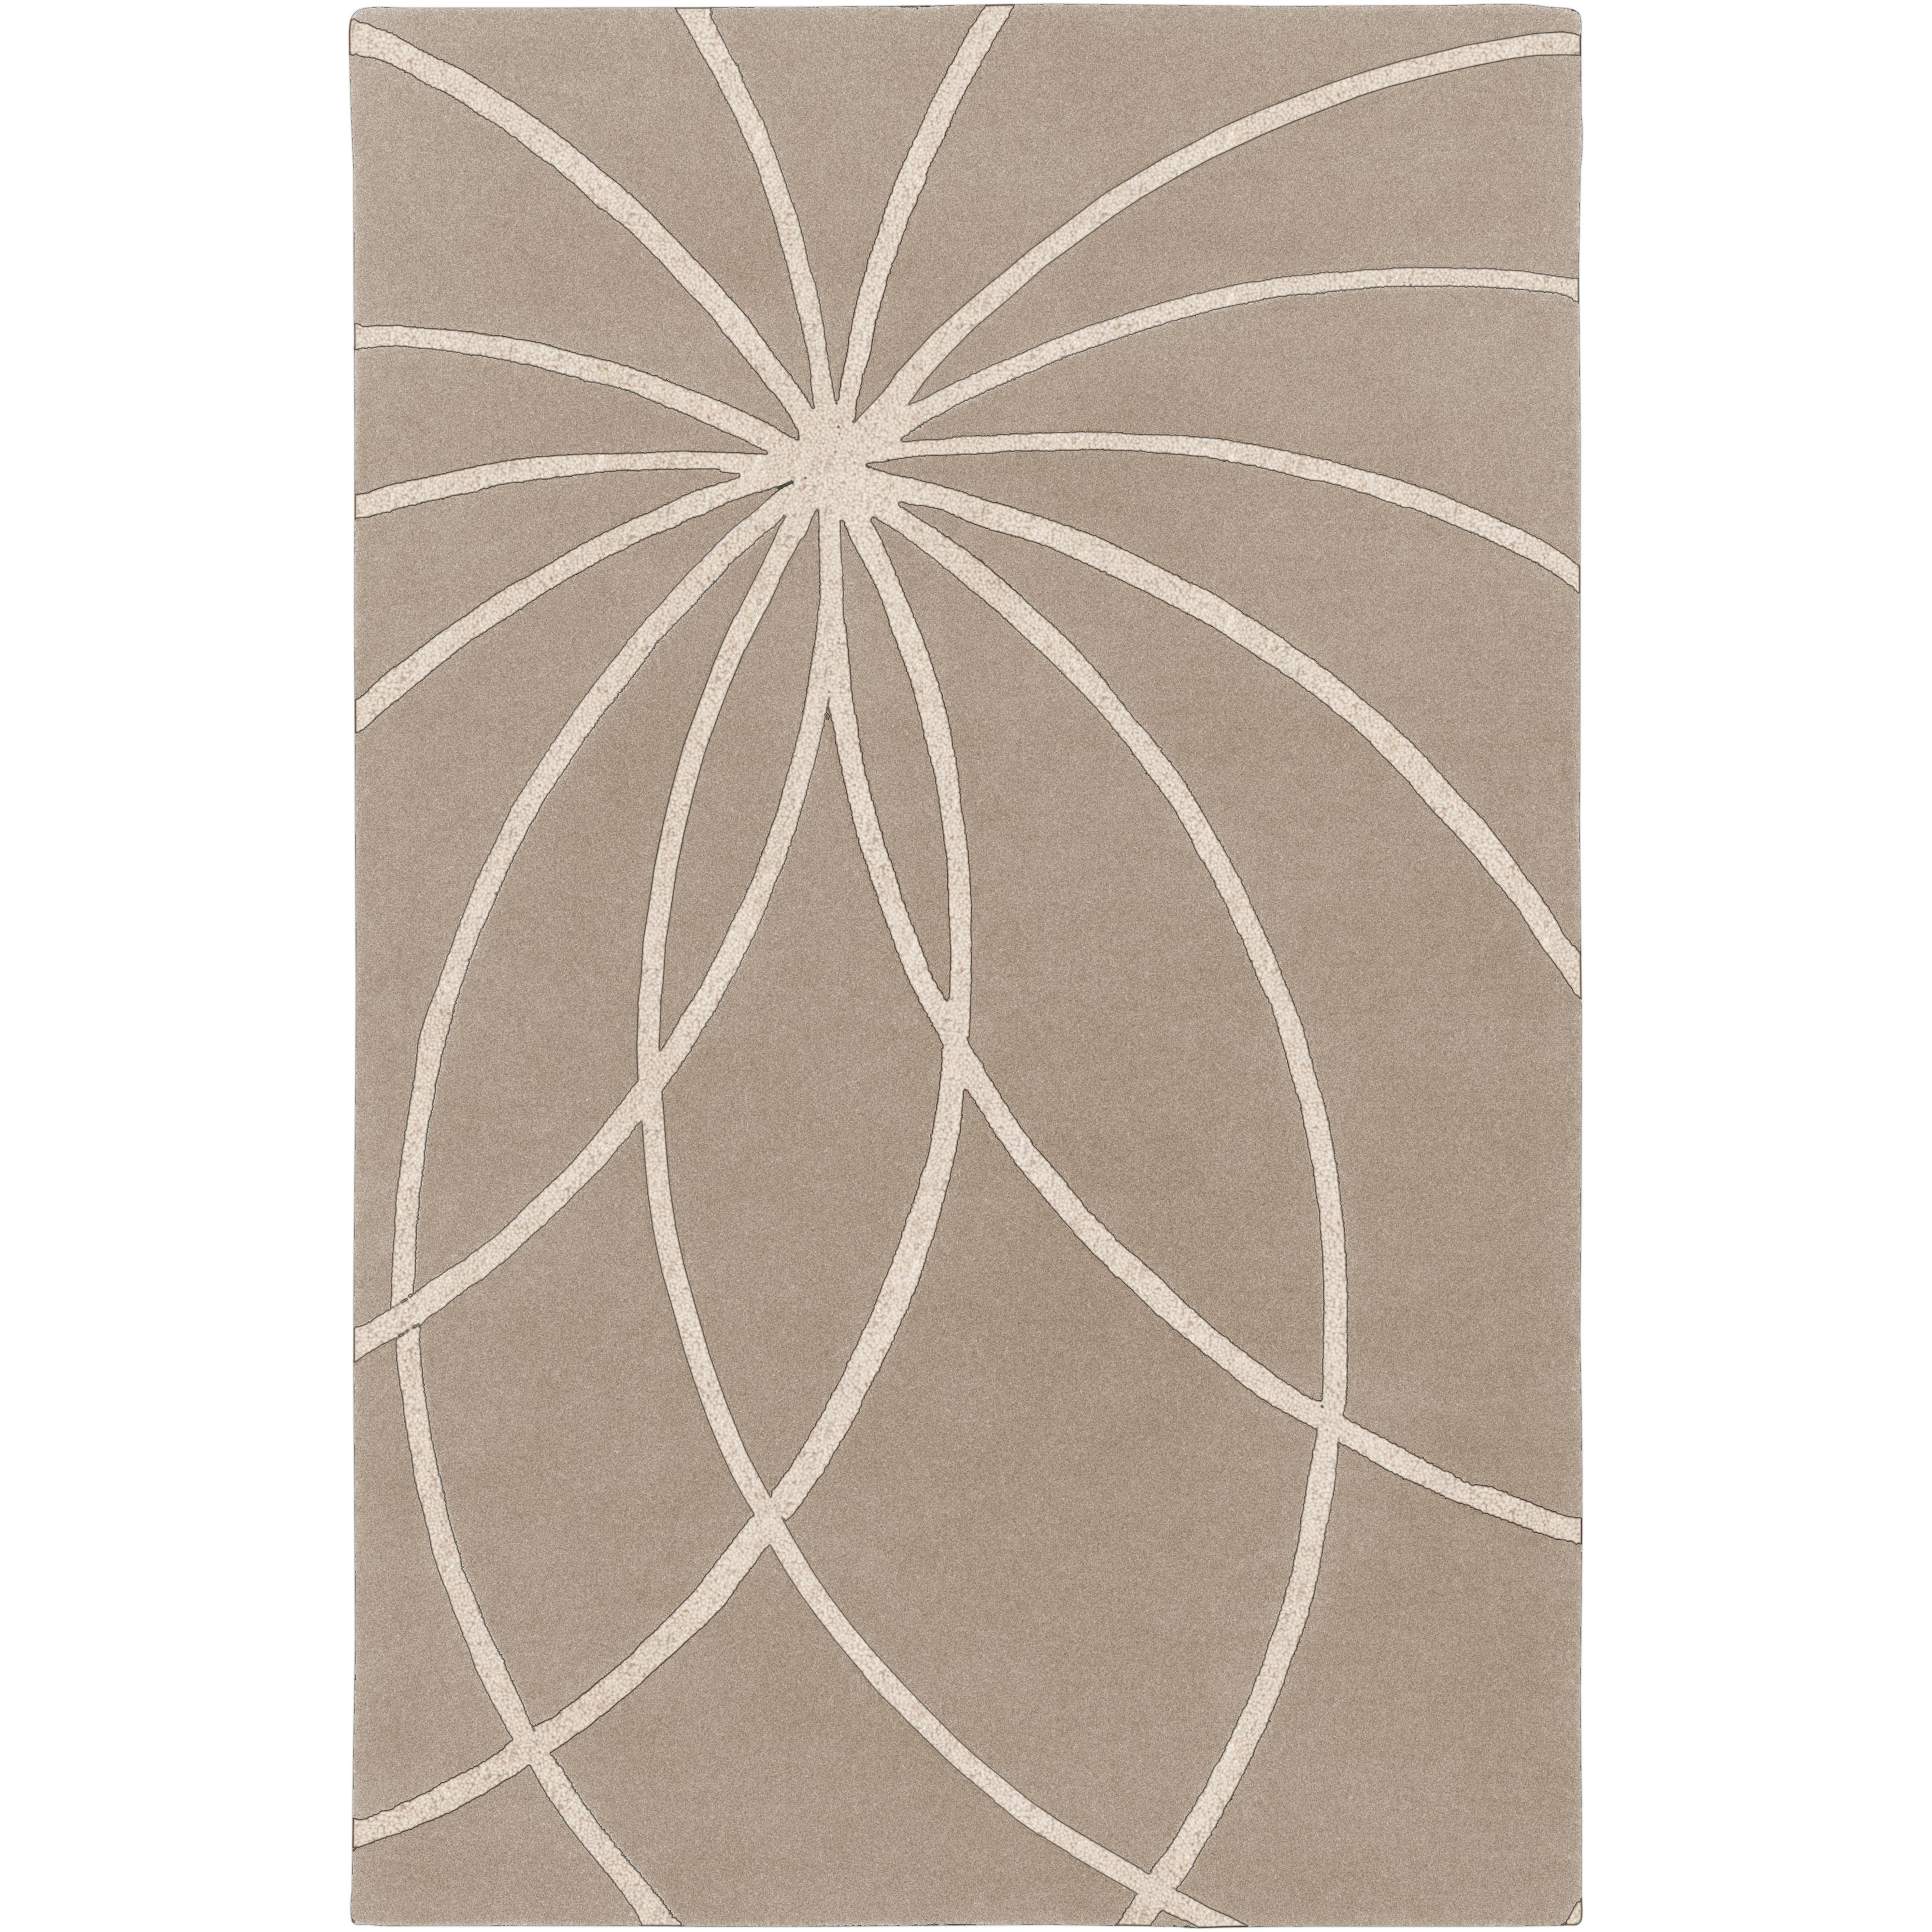 Surya Rugs Forum 4' x 6' - Item Number: FM7185-46